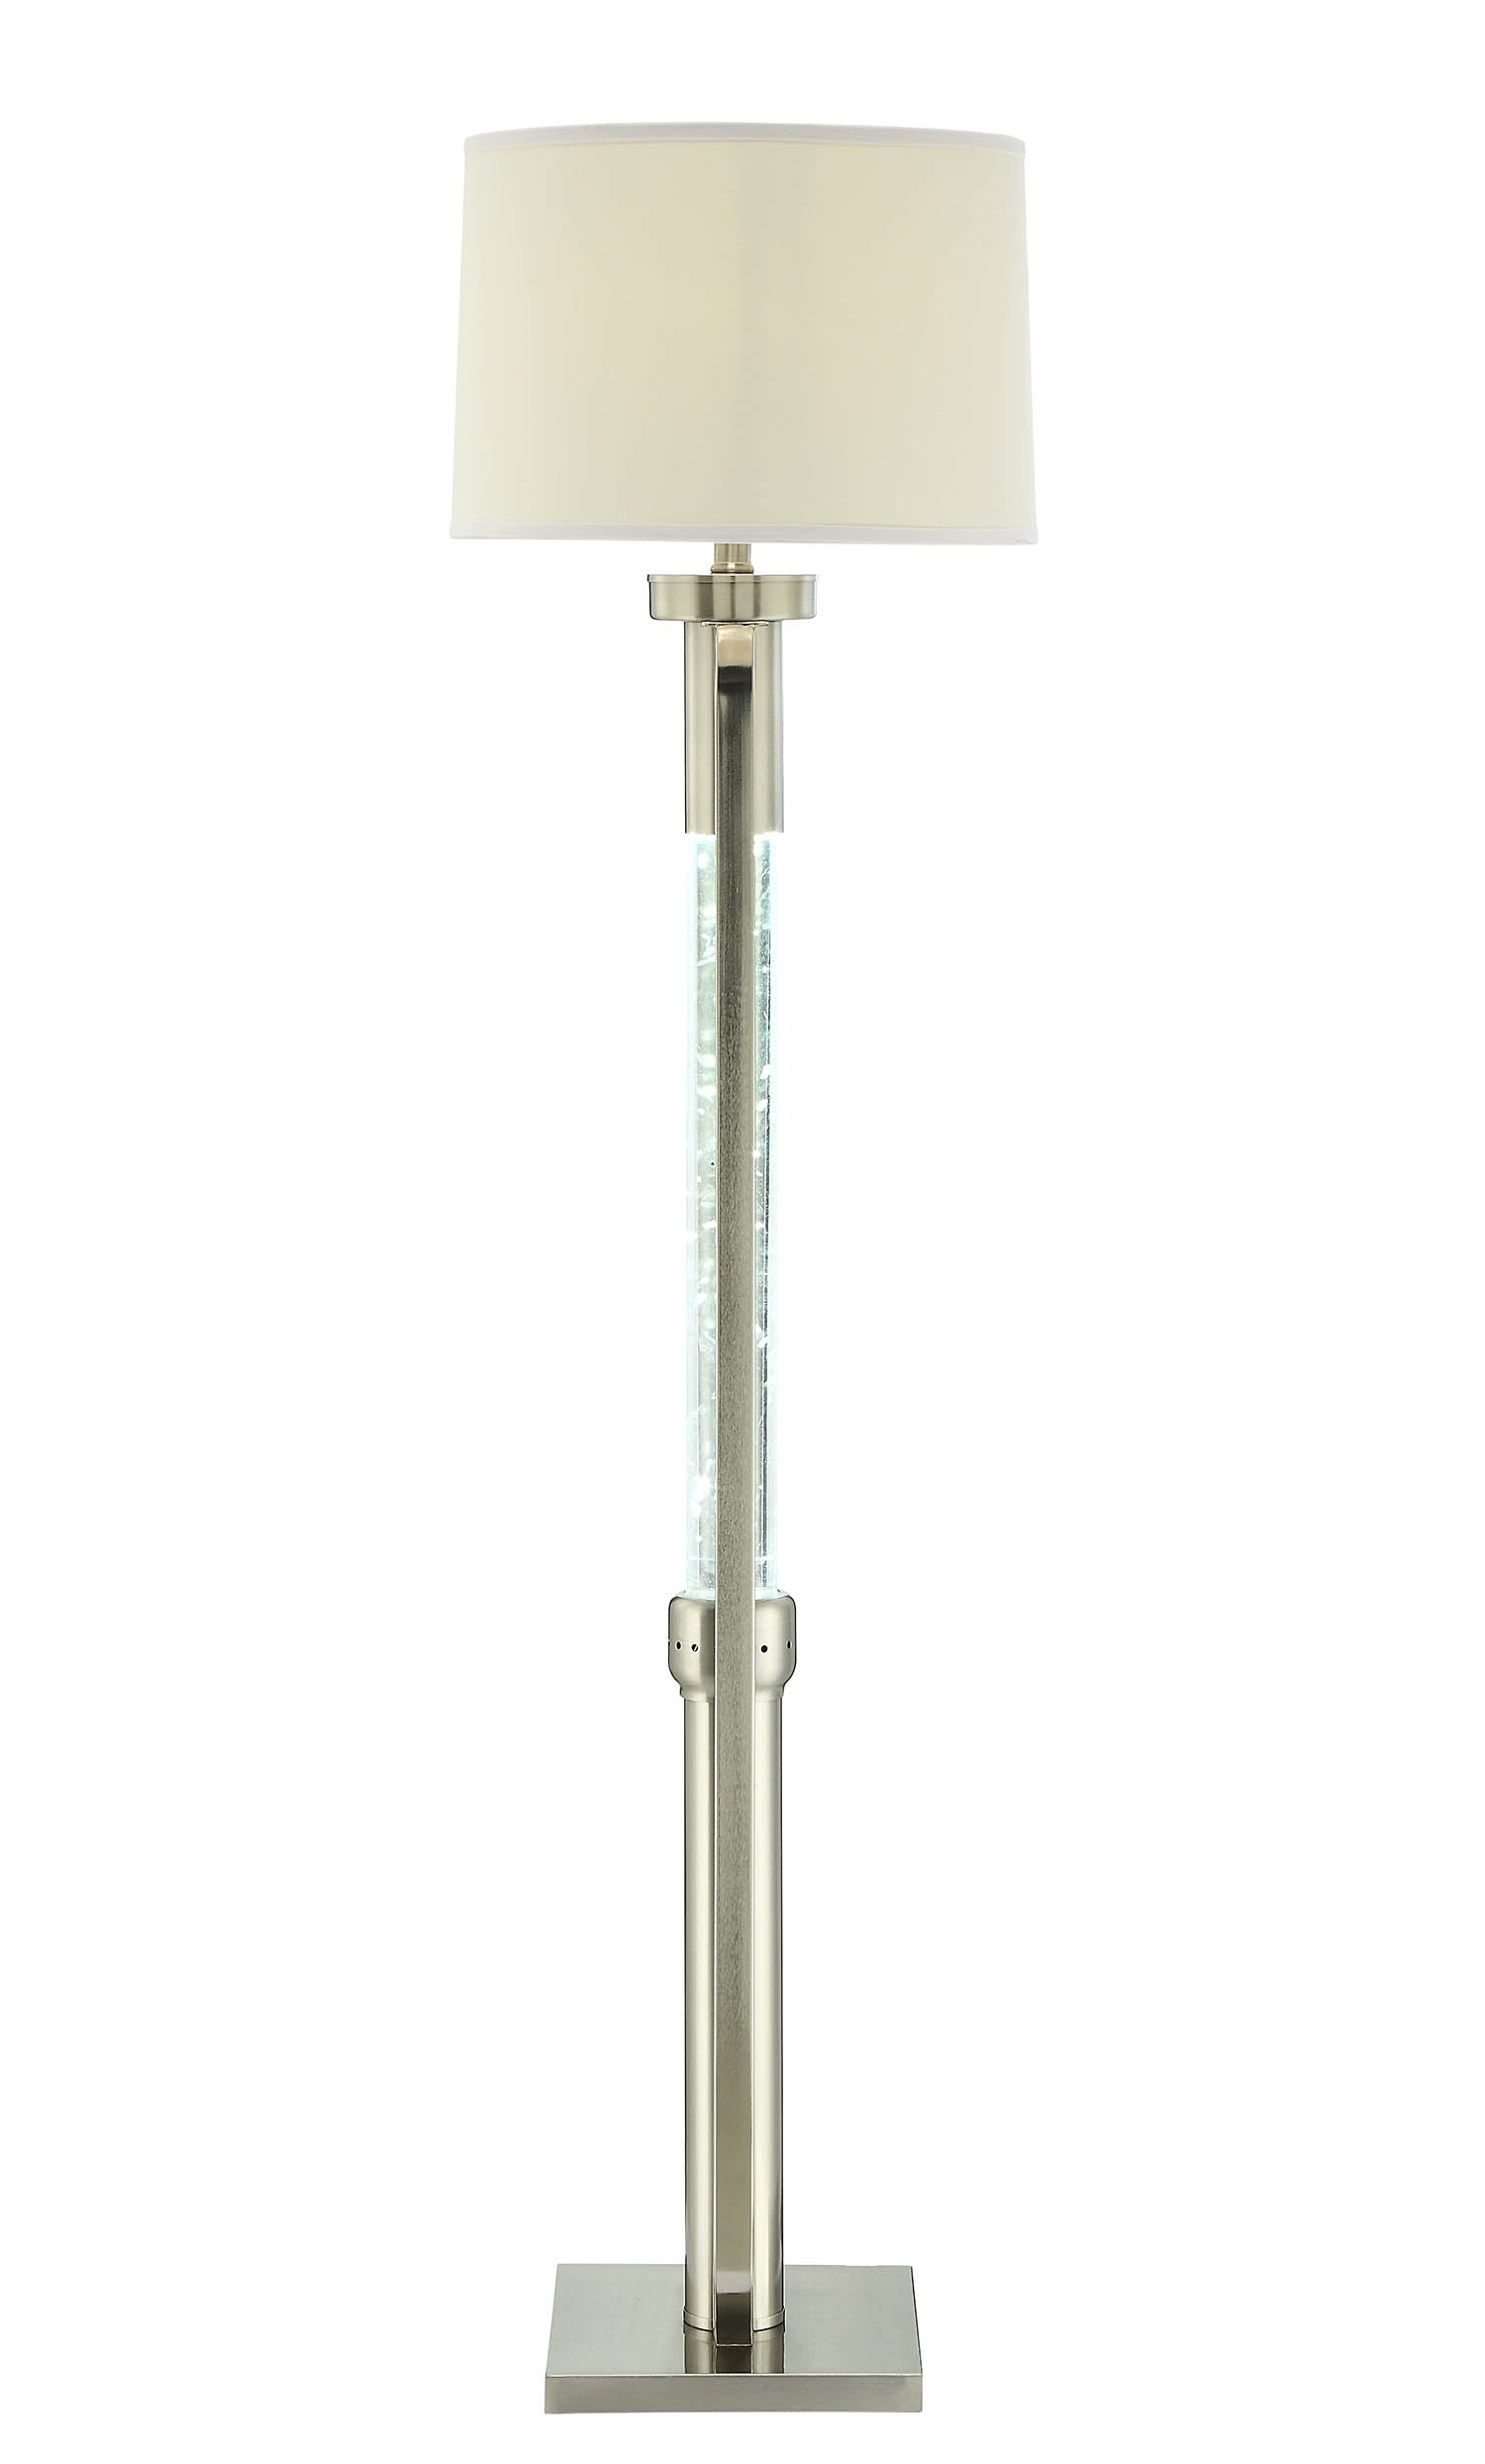 "15"" X 15"" X 58"" Sand Nickel Floor Lamp"